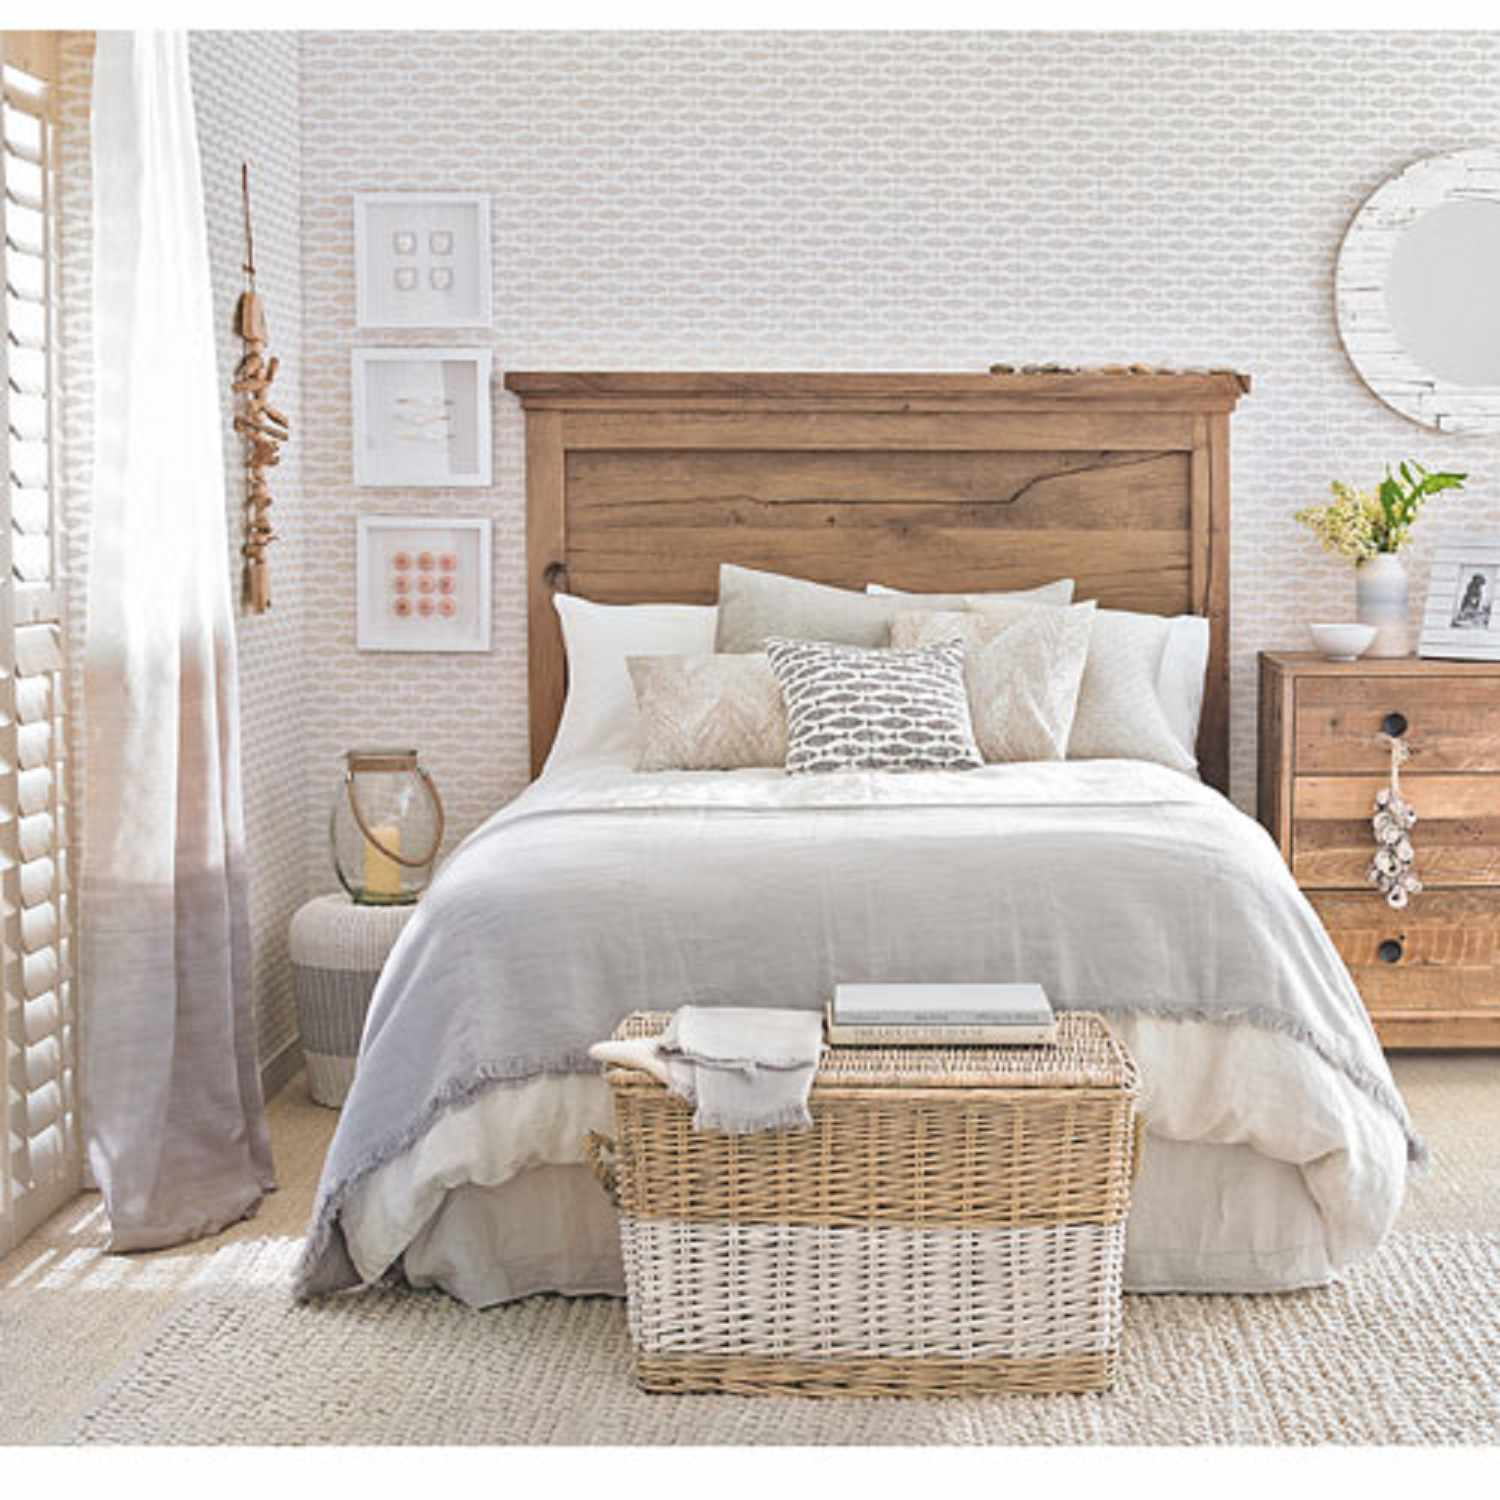 Neutral beach cottage bedroom